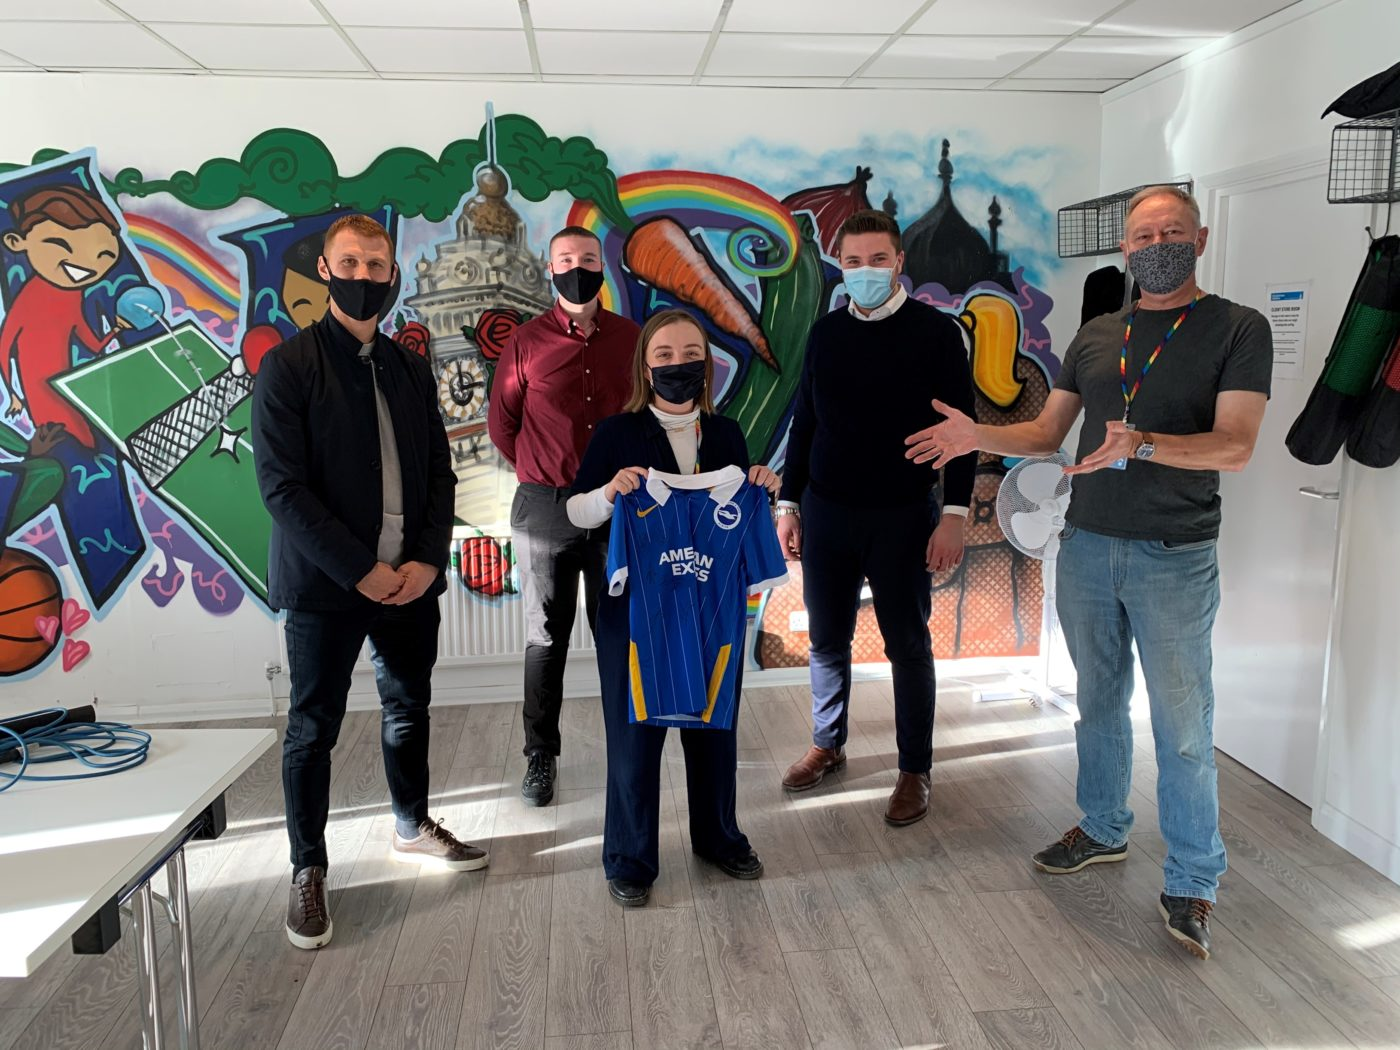 Steve Sidwell visits the CTS studio with staff and volunteers. The group are standing in front of the grafitti mural holding a signed Brighton & Hove Albion shirt.